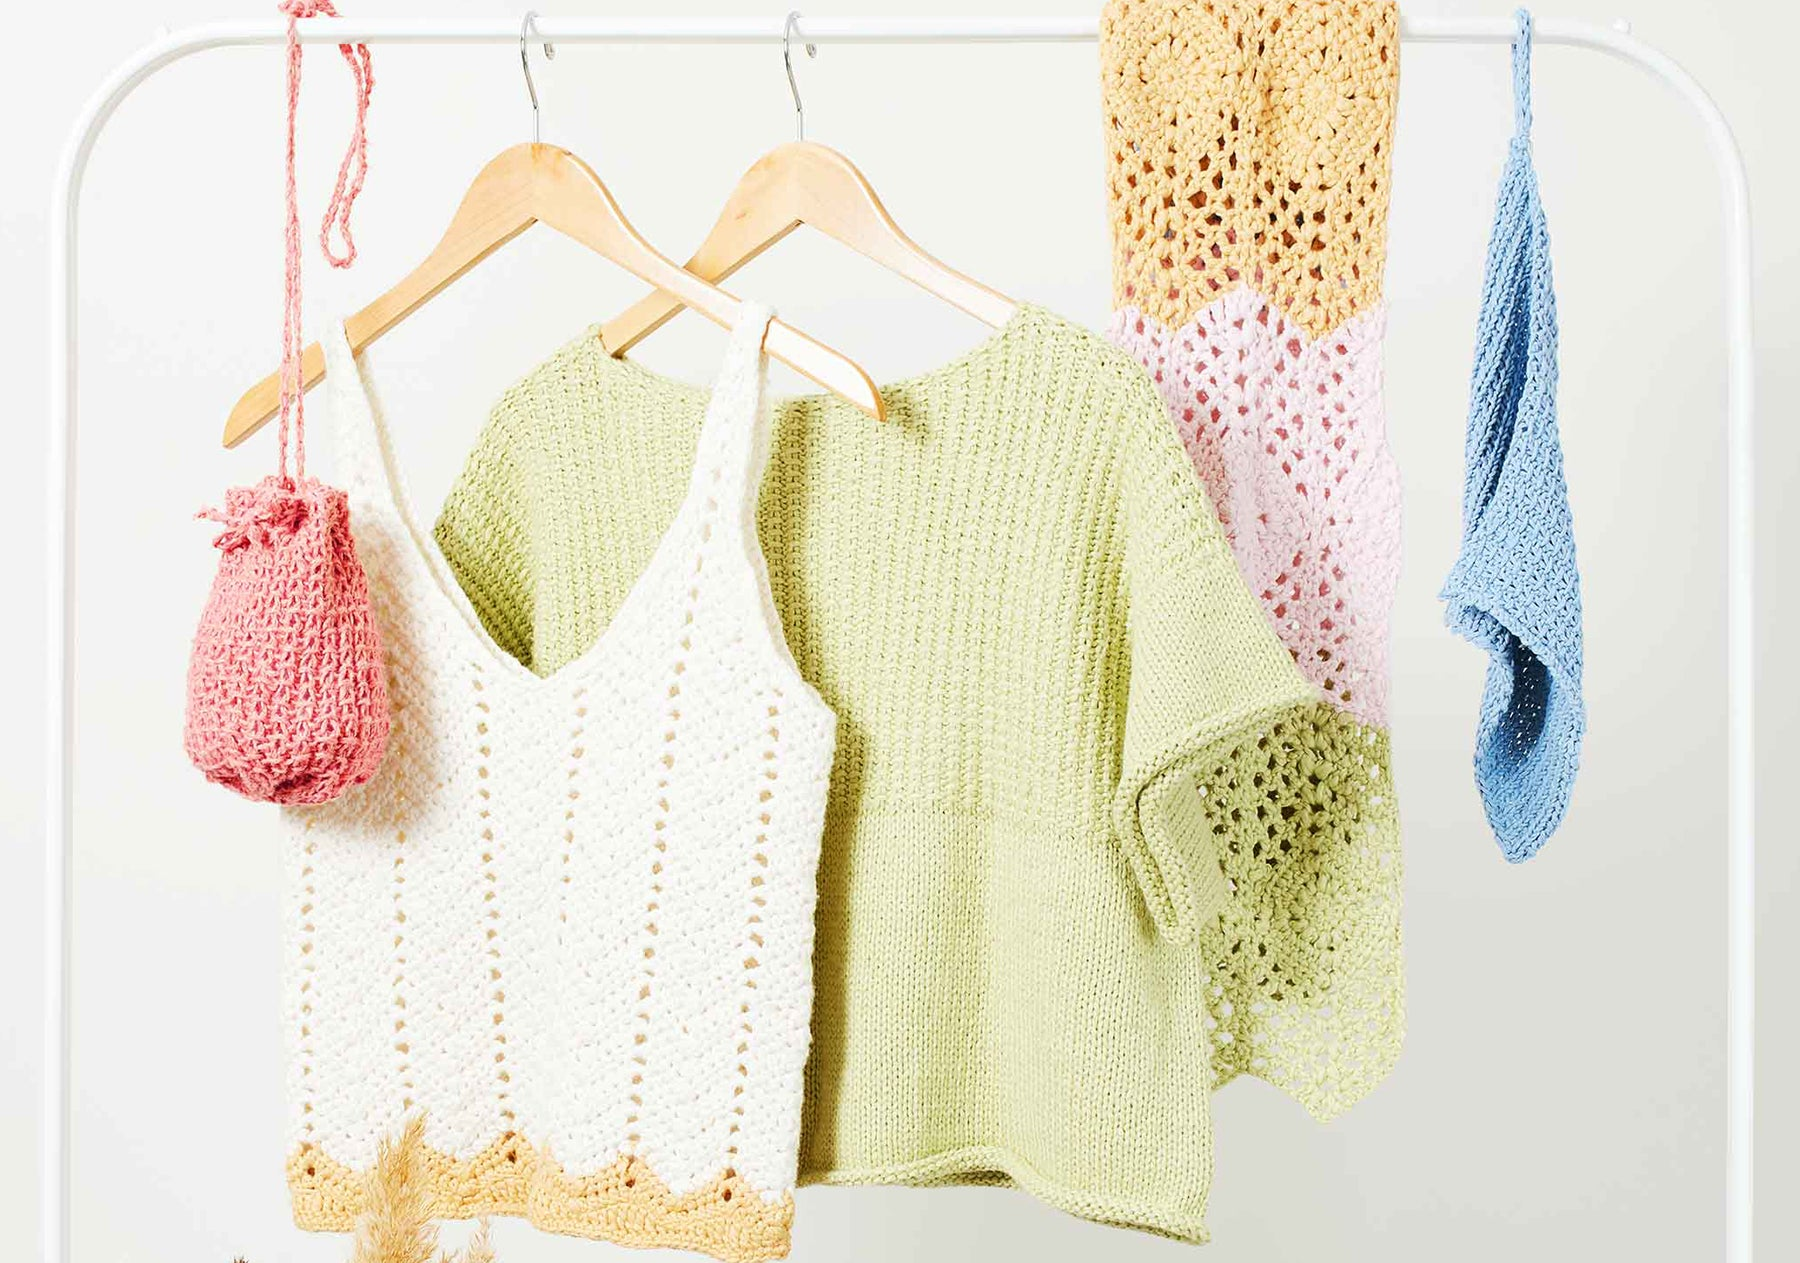 10 knitting and crochet patterns for summer